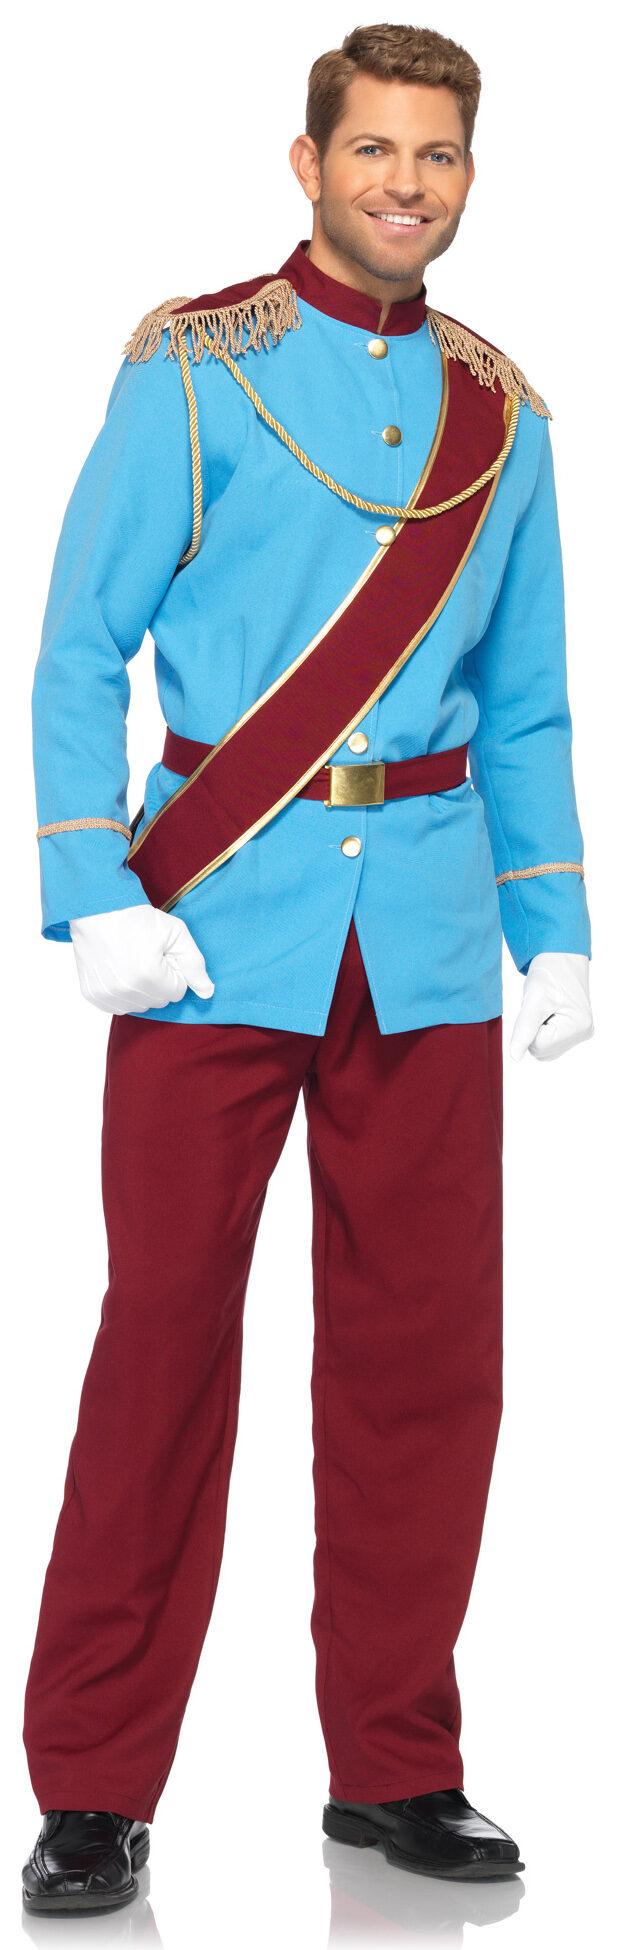 Prince Charming Adult Costume - Mr. Costumes